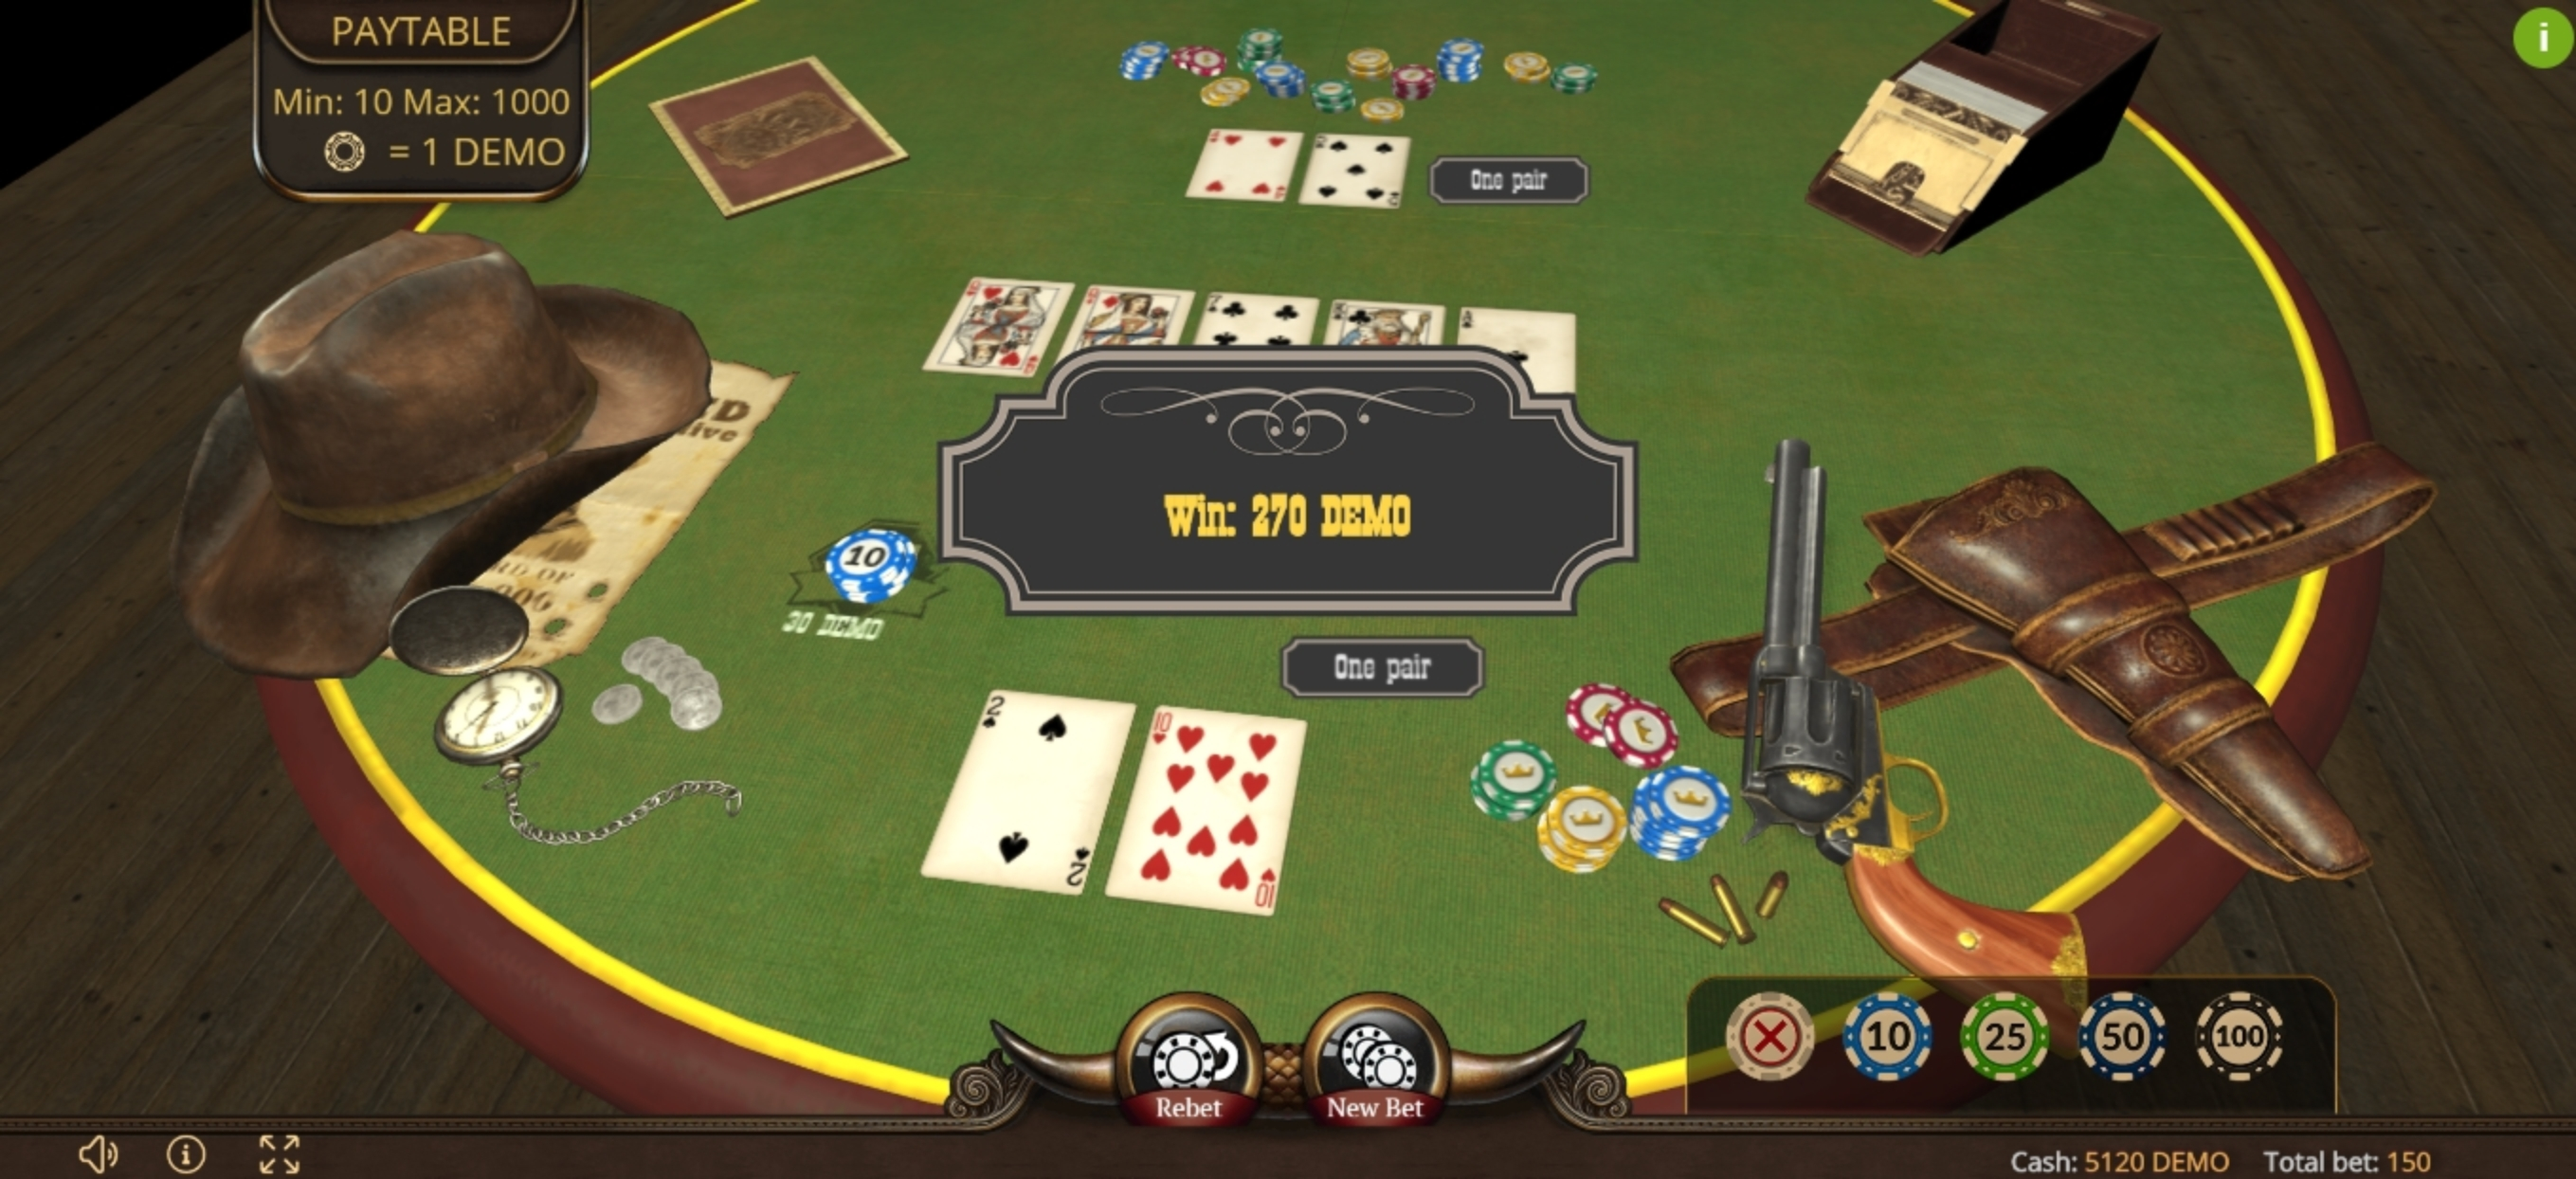 Win Money in Texas Holdem Poker 3D Free Slot Game by Evoplay Entertainment